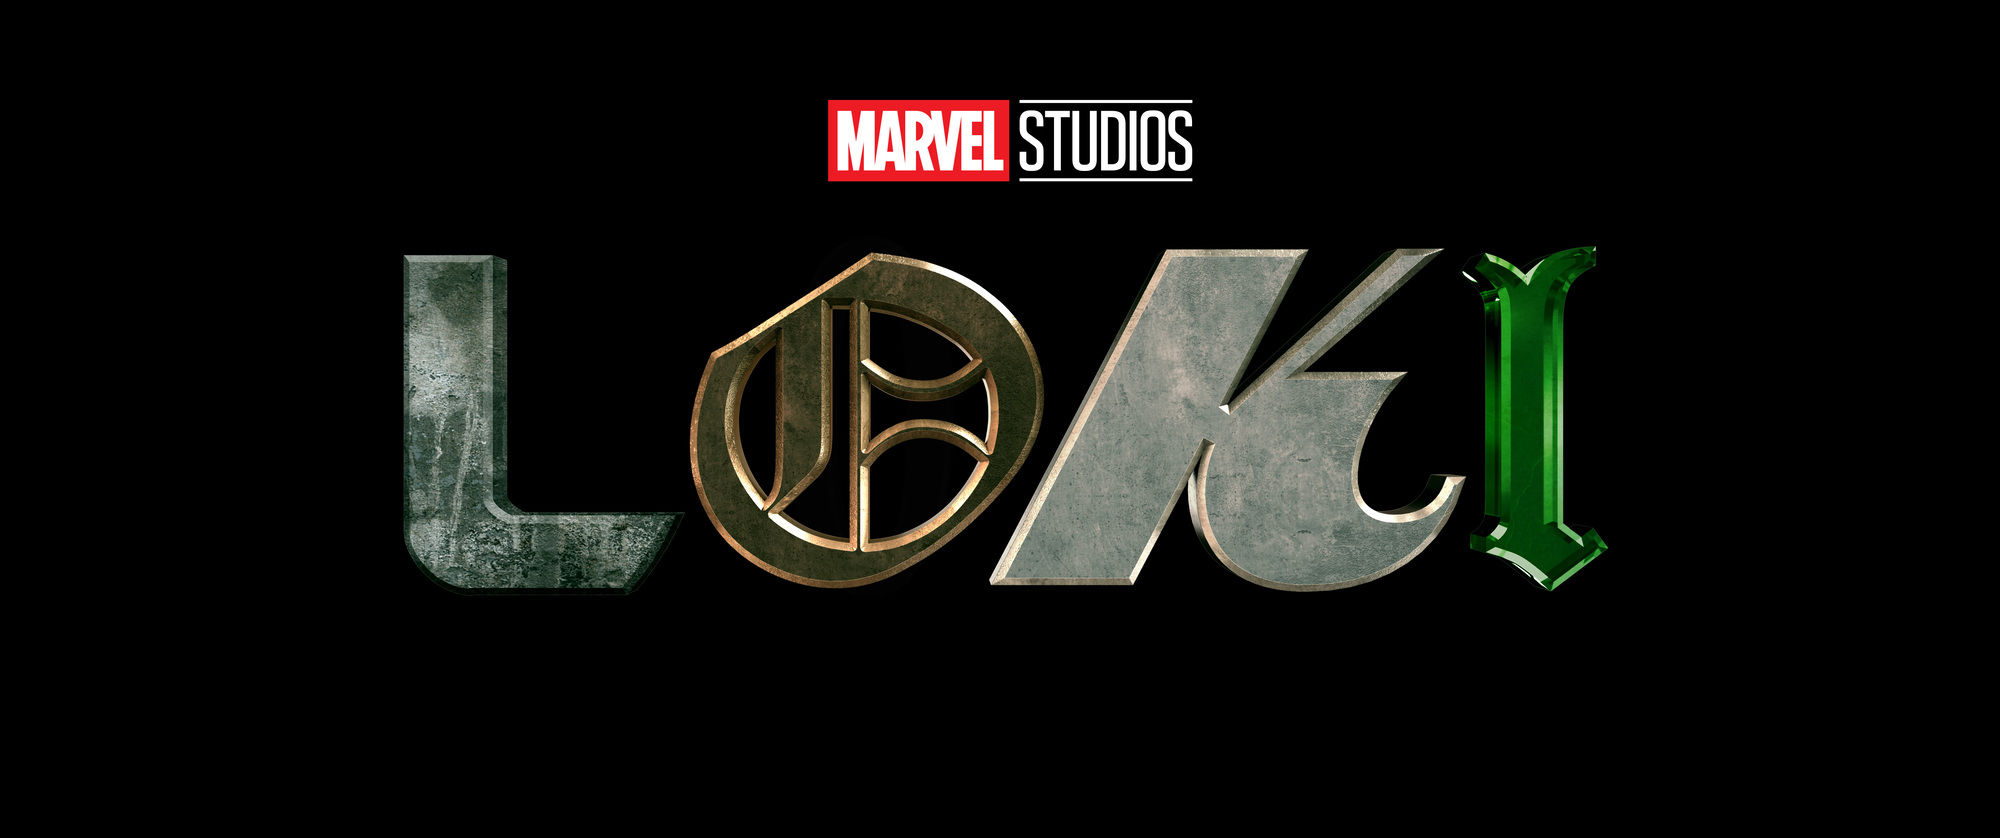 Disney+ streaming: Every Marvel Cinematic Universe movie and